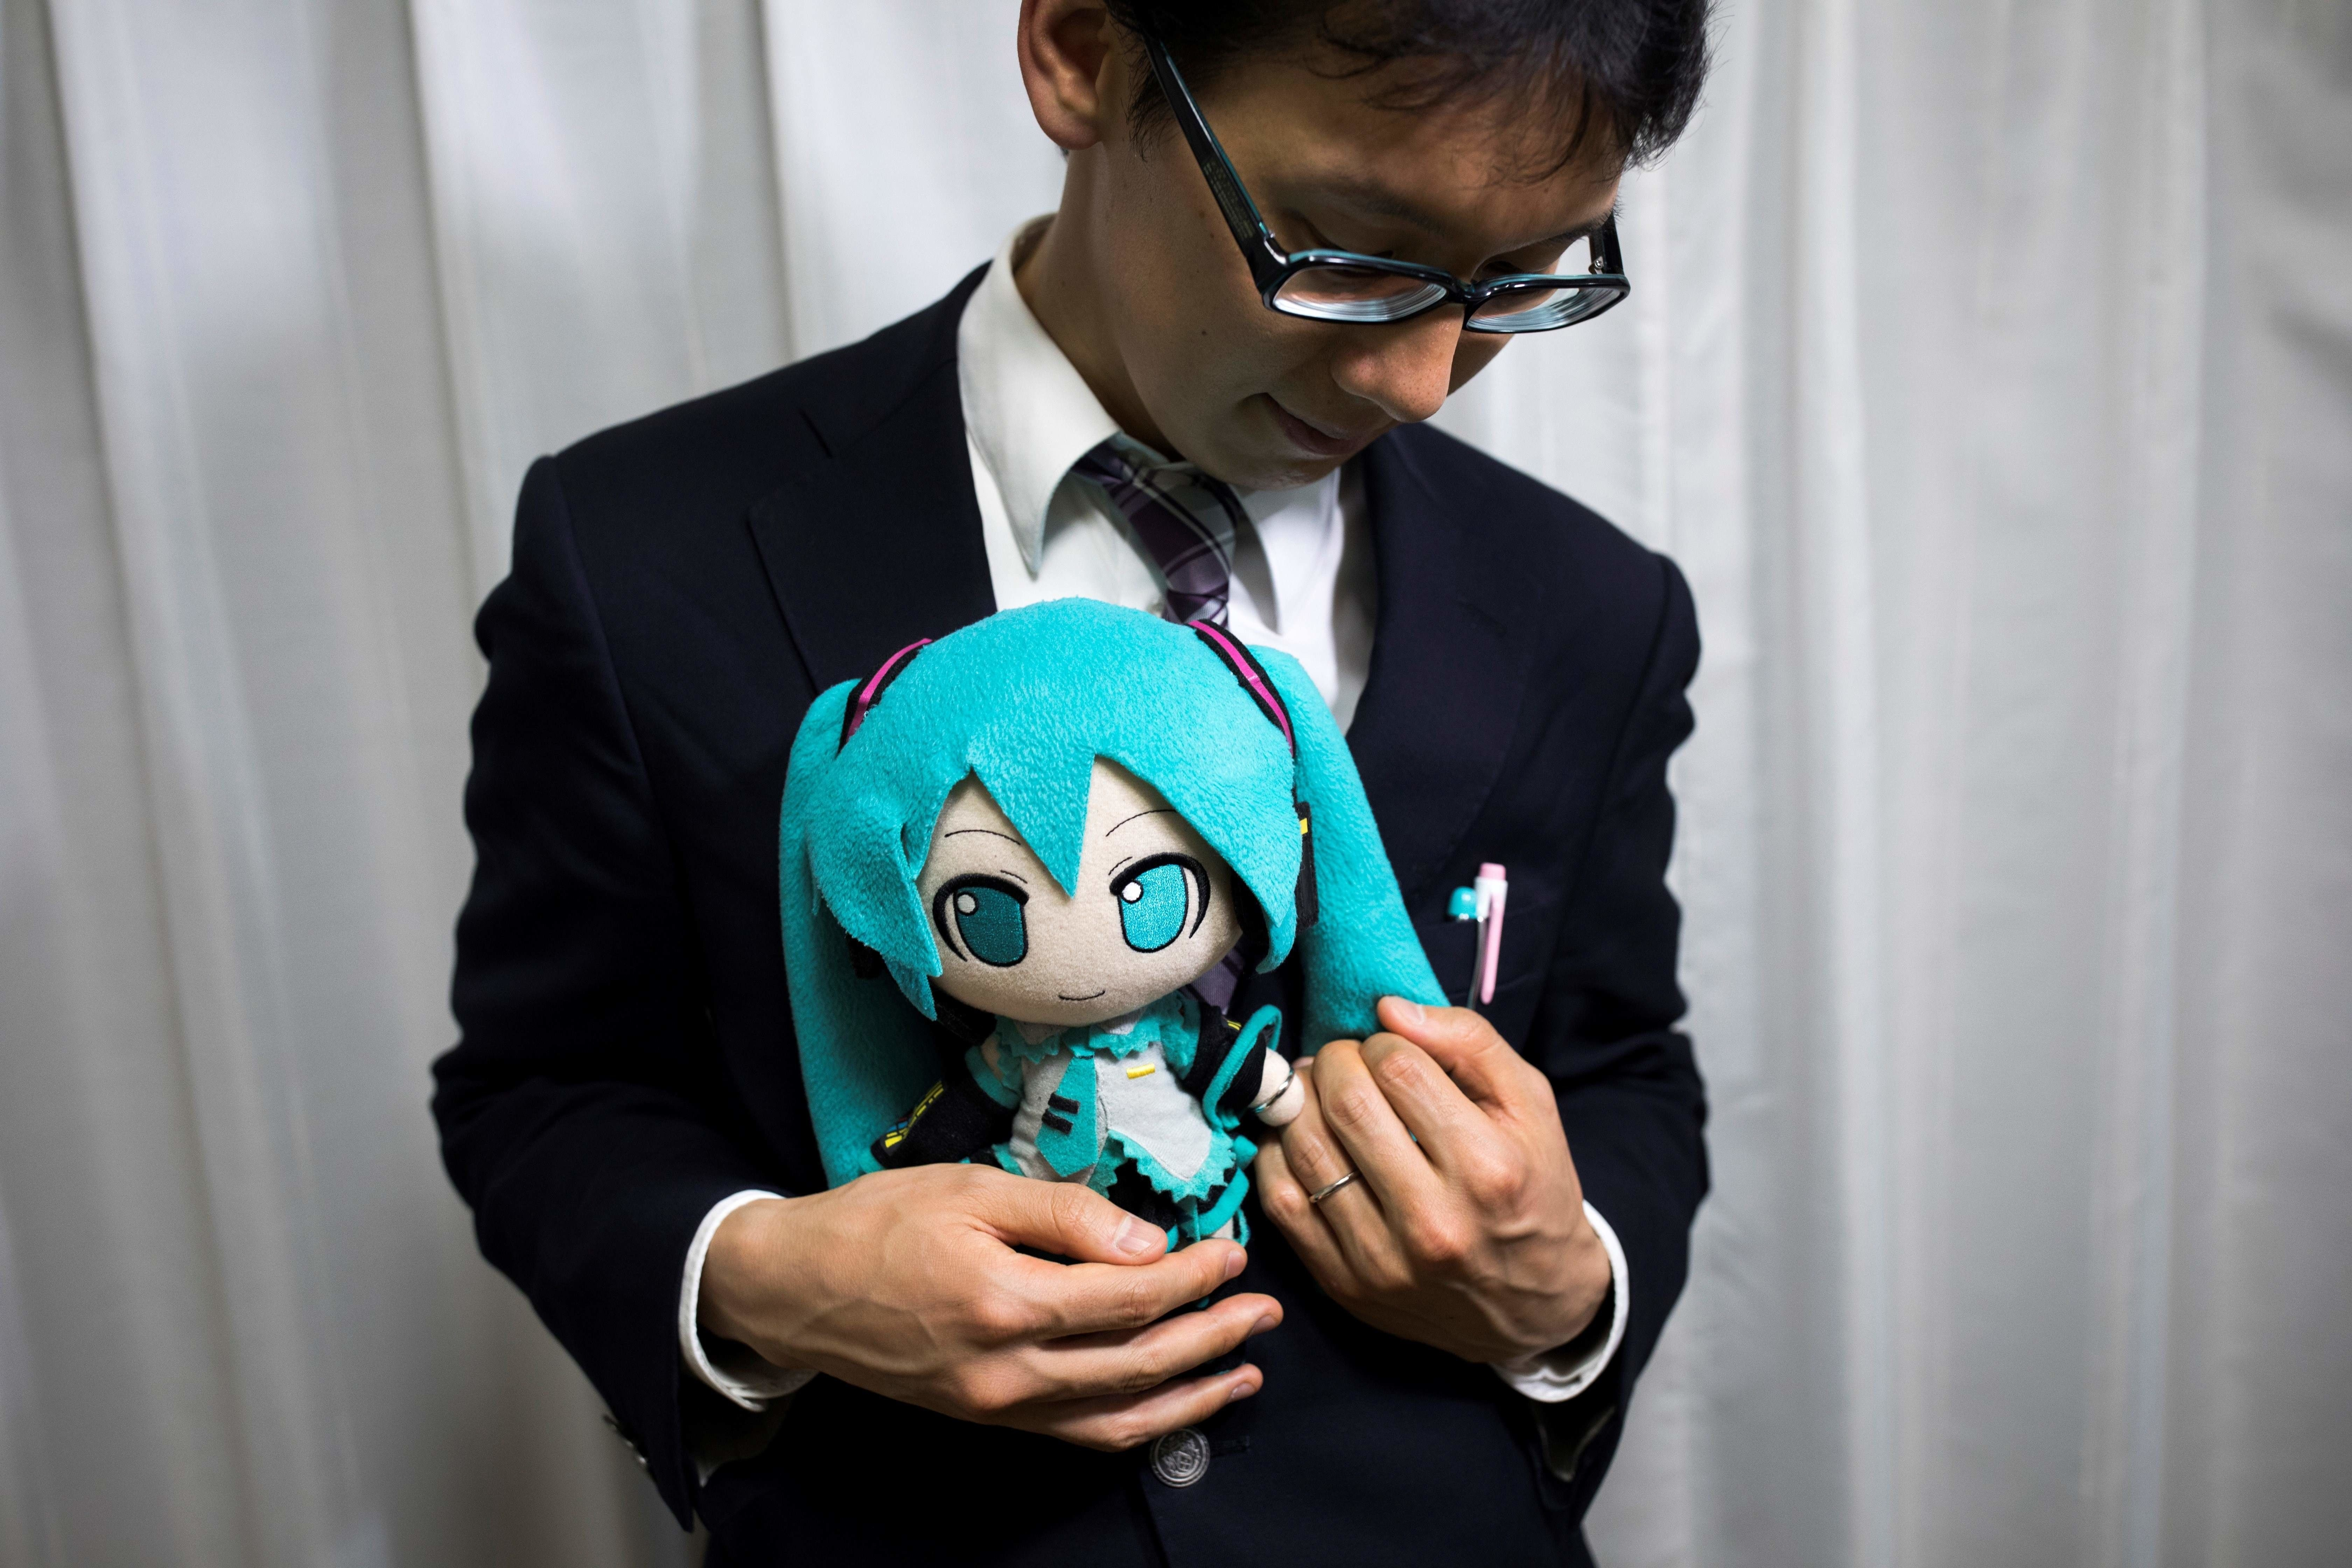 In this photograph taken on November 10, 2018 Japanese Akihiko Kondo poses with a doll of Japanese virtual reality singer Hatsune Miku, as both wear their wedding rings, at his apartment in Tokyo, a week after marrying her. - Akihiko Kondo, who is an administrator at a school, married to a Japanese virtual reality singer called Hatsune Miku in early November 2018. The bride is a computer animation with saucer eyes and lengthy aquamarine pigtails who performs to adoring fans as virtual reality character . (Photo by Behrouz MEHRI / AFP) / TO GO WITH AFP STORY: Japan-culture-entertainment-computers-music-social, FOCUS by Miwa SUZUKI        (Photo credit should read BEHROUZ MEHRI/AFP/Getty Images)